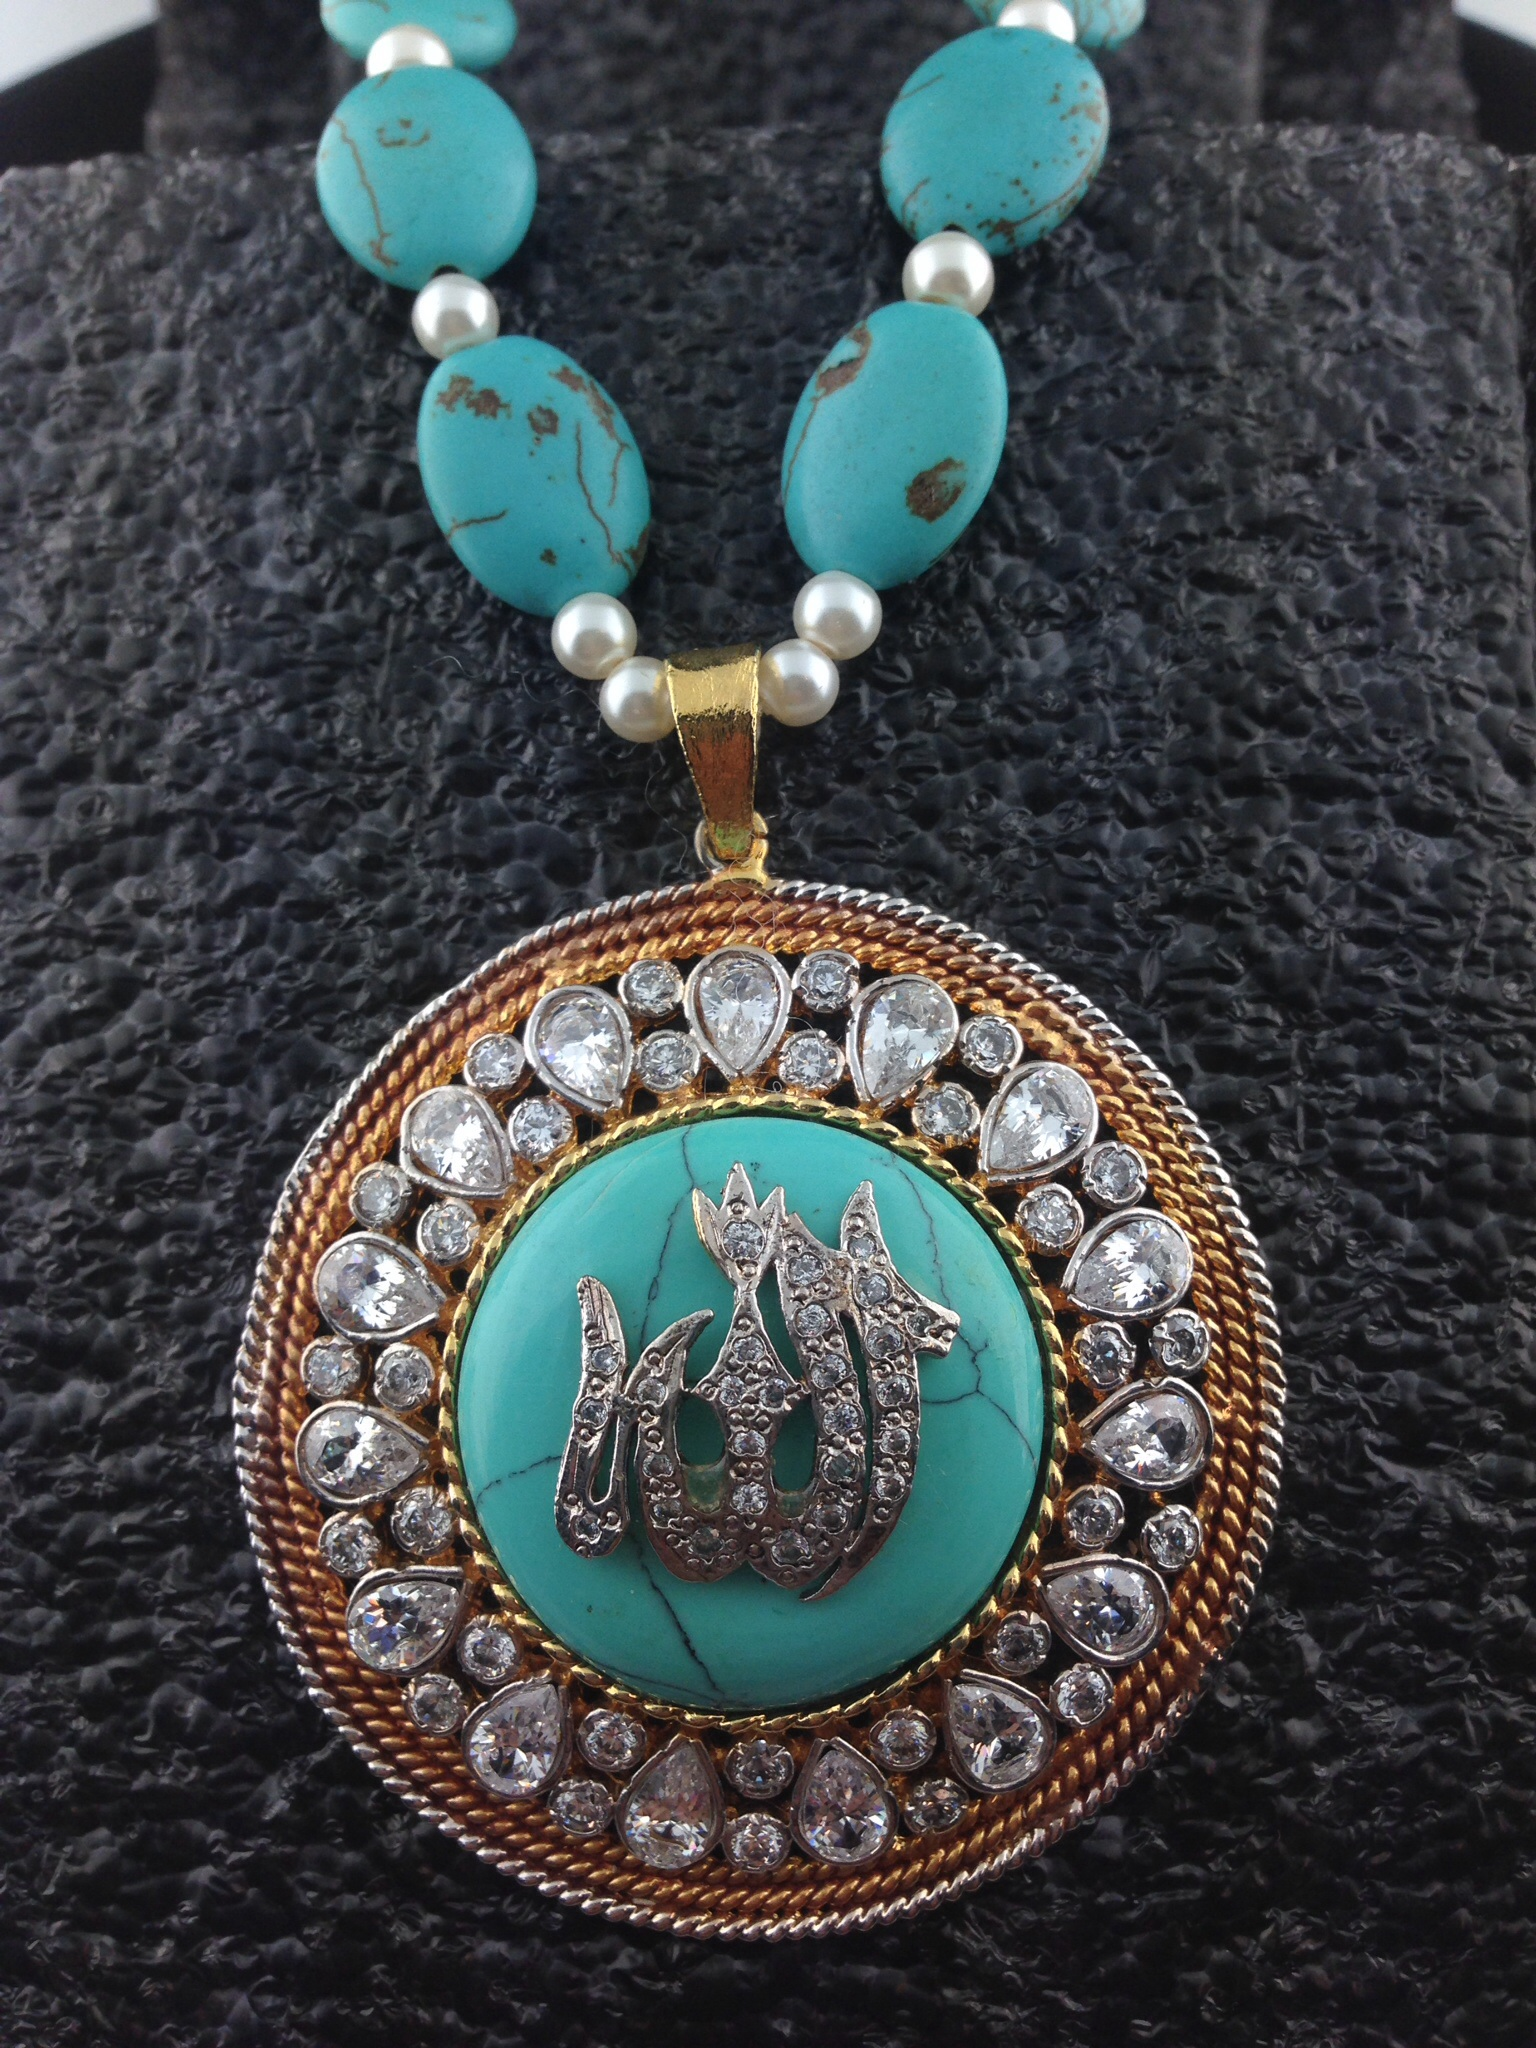 Allah CZ Turquoise Pendant with Beaded Necklace